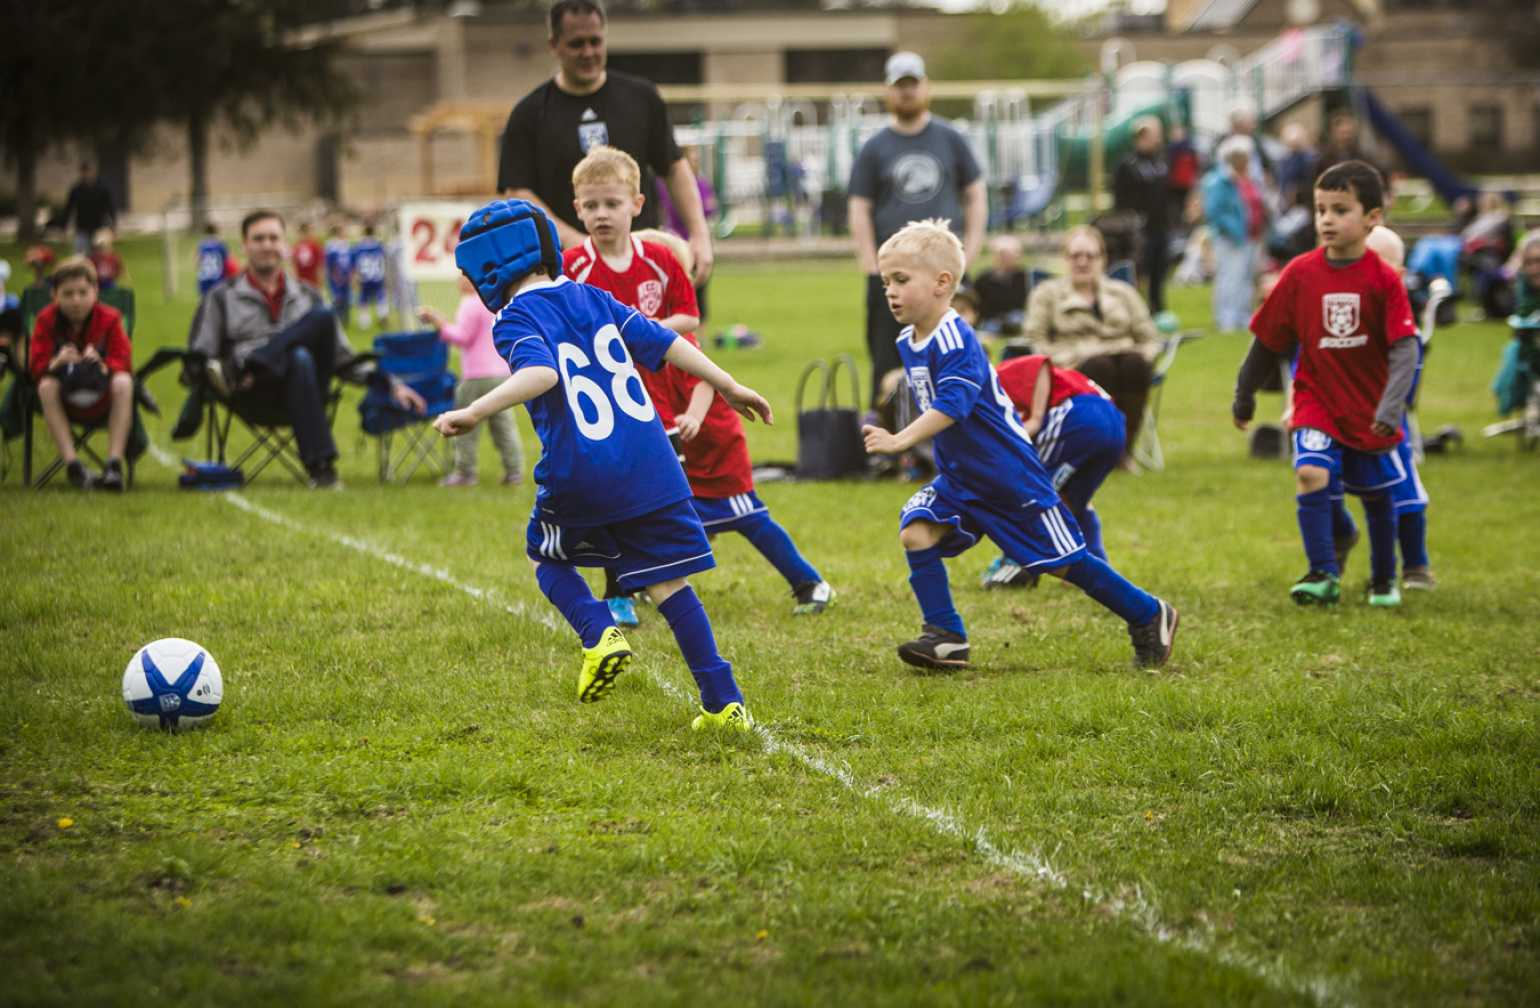 gillette patient Ezra runs to score a goal during soccer game